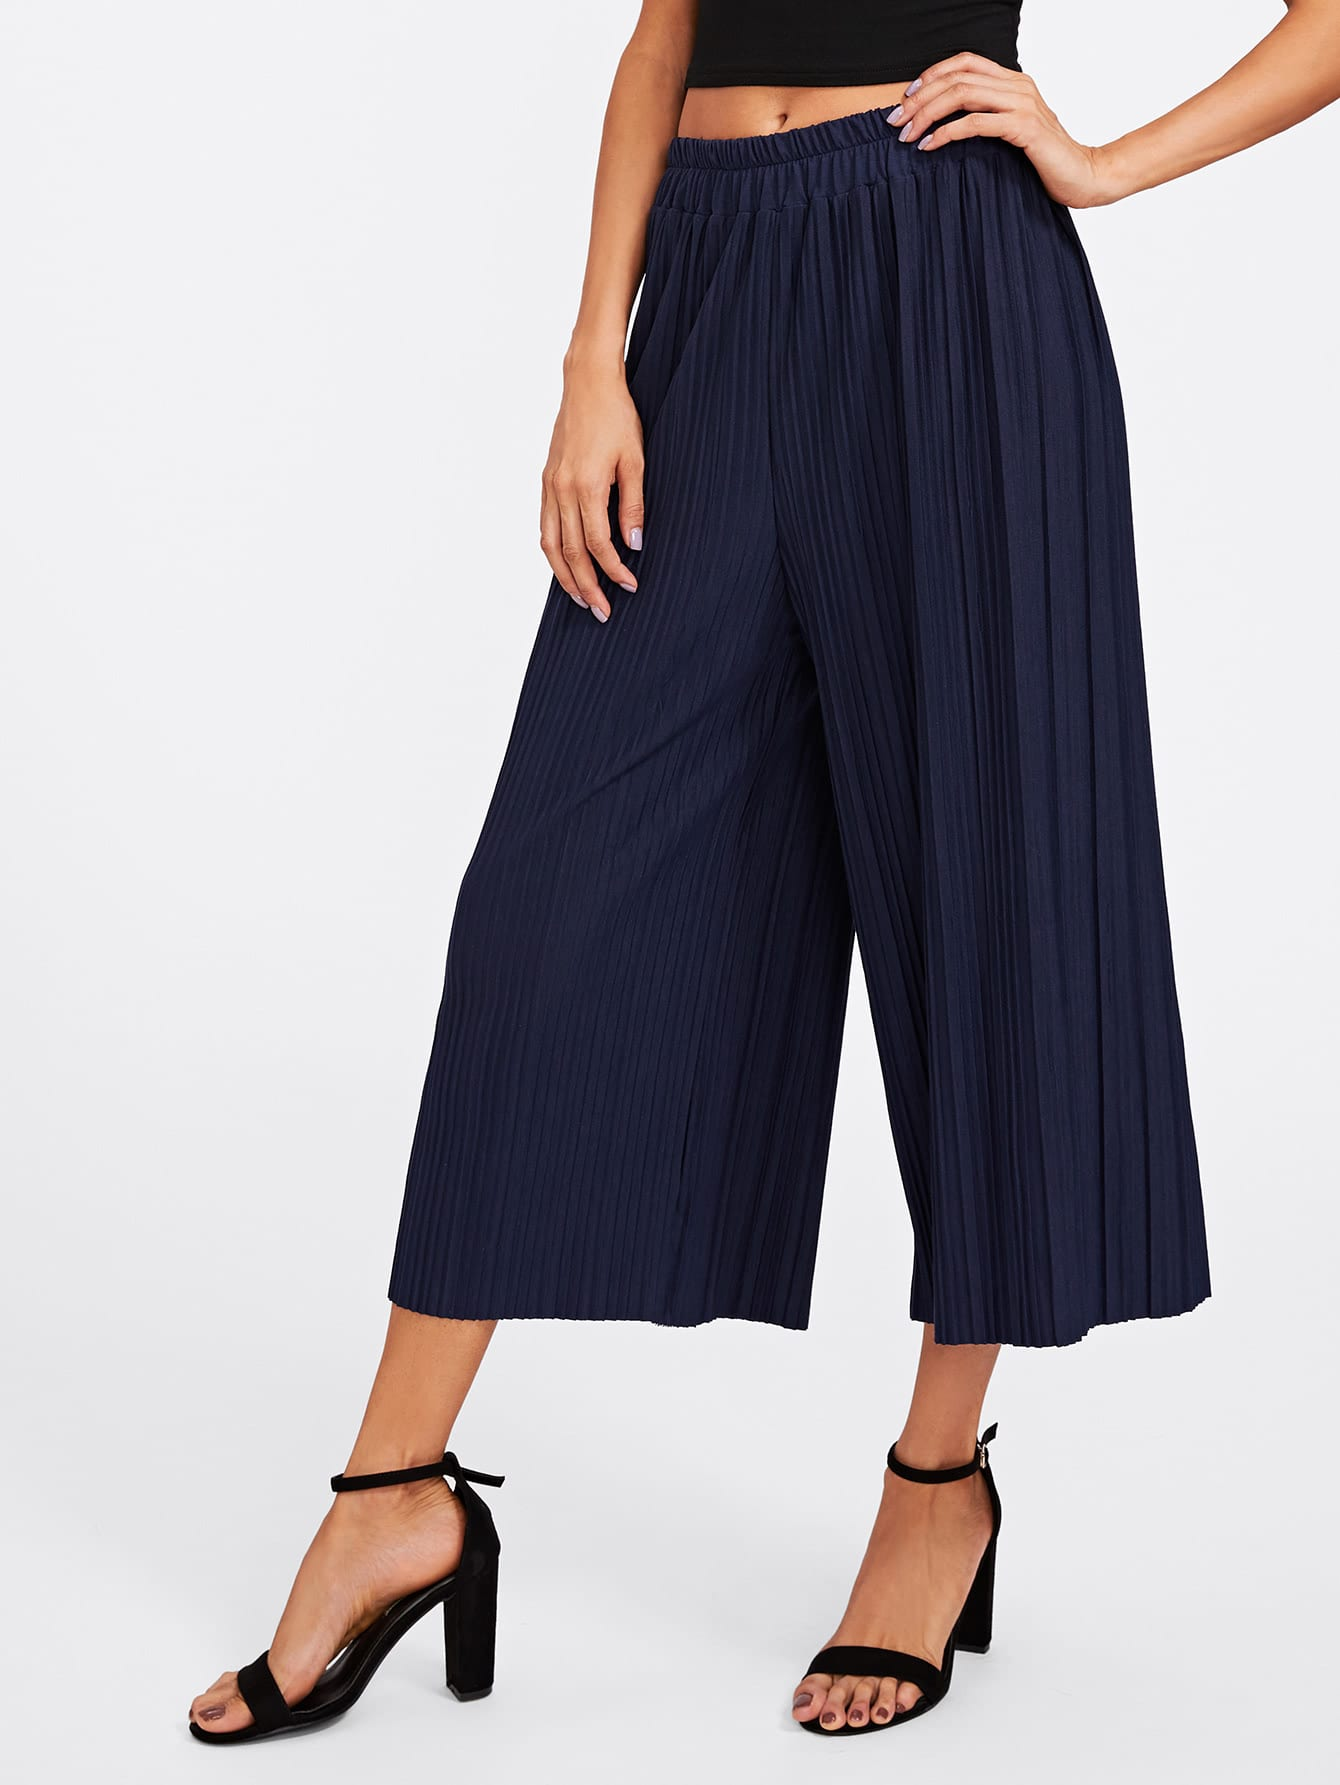 Elastic Waist Pleated Wide Leg Pants elastic ruched waist wide leg pants